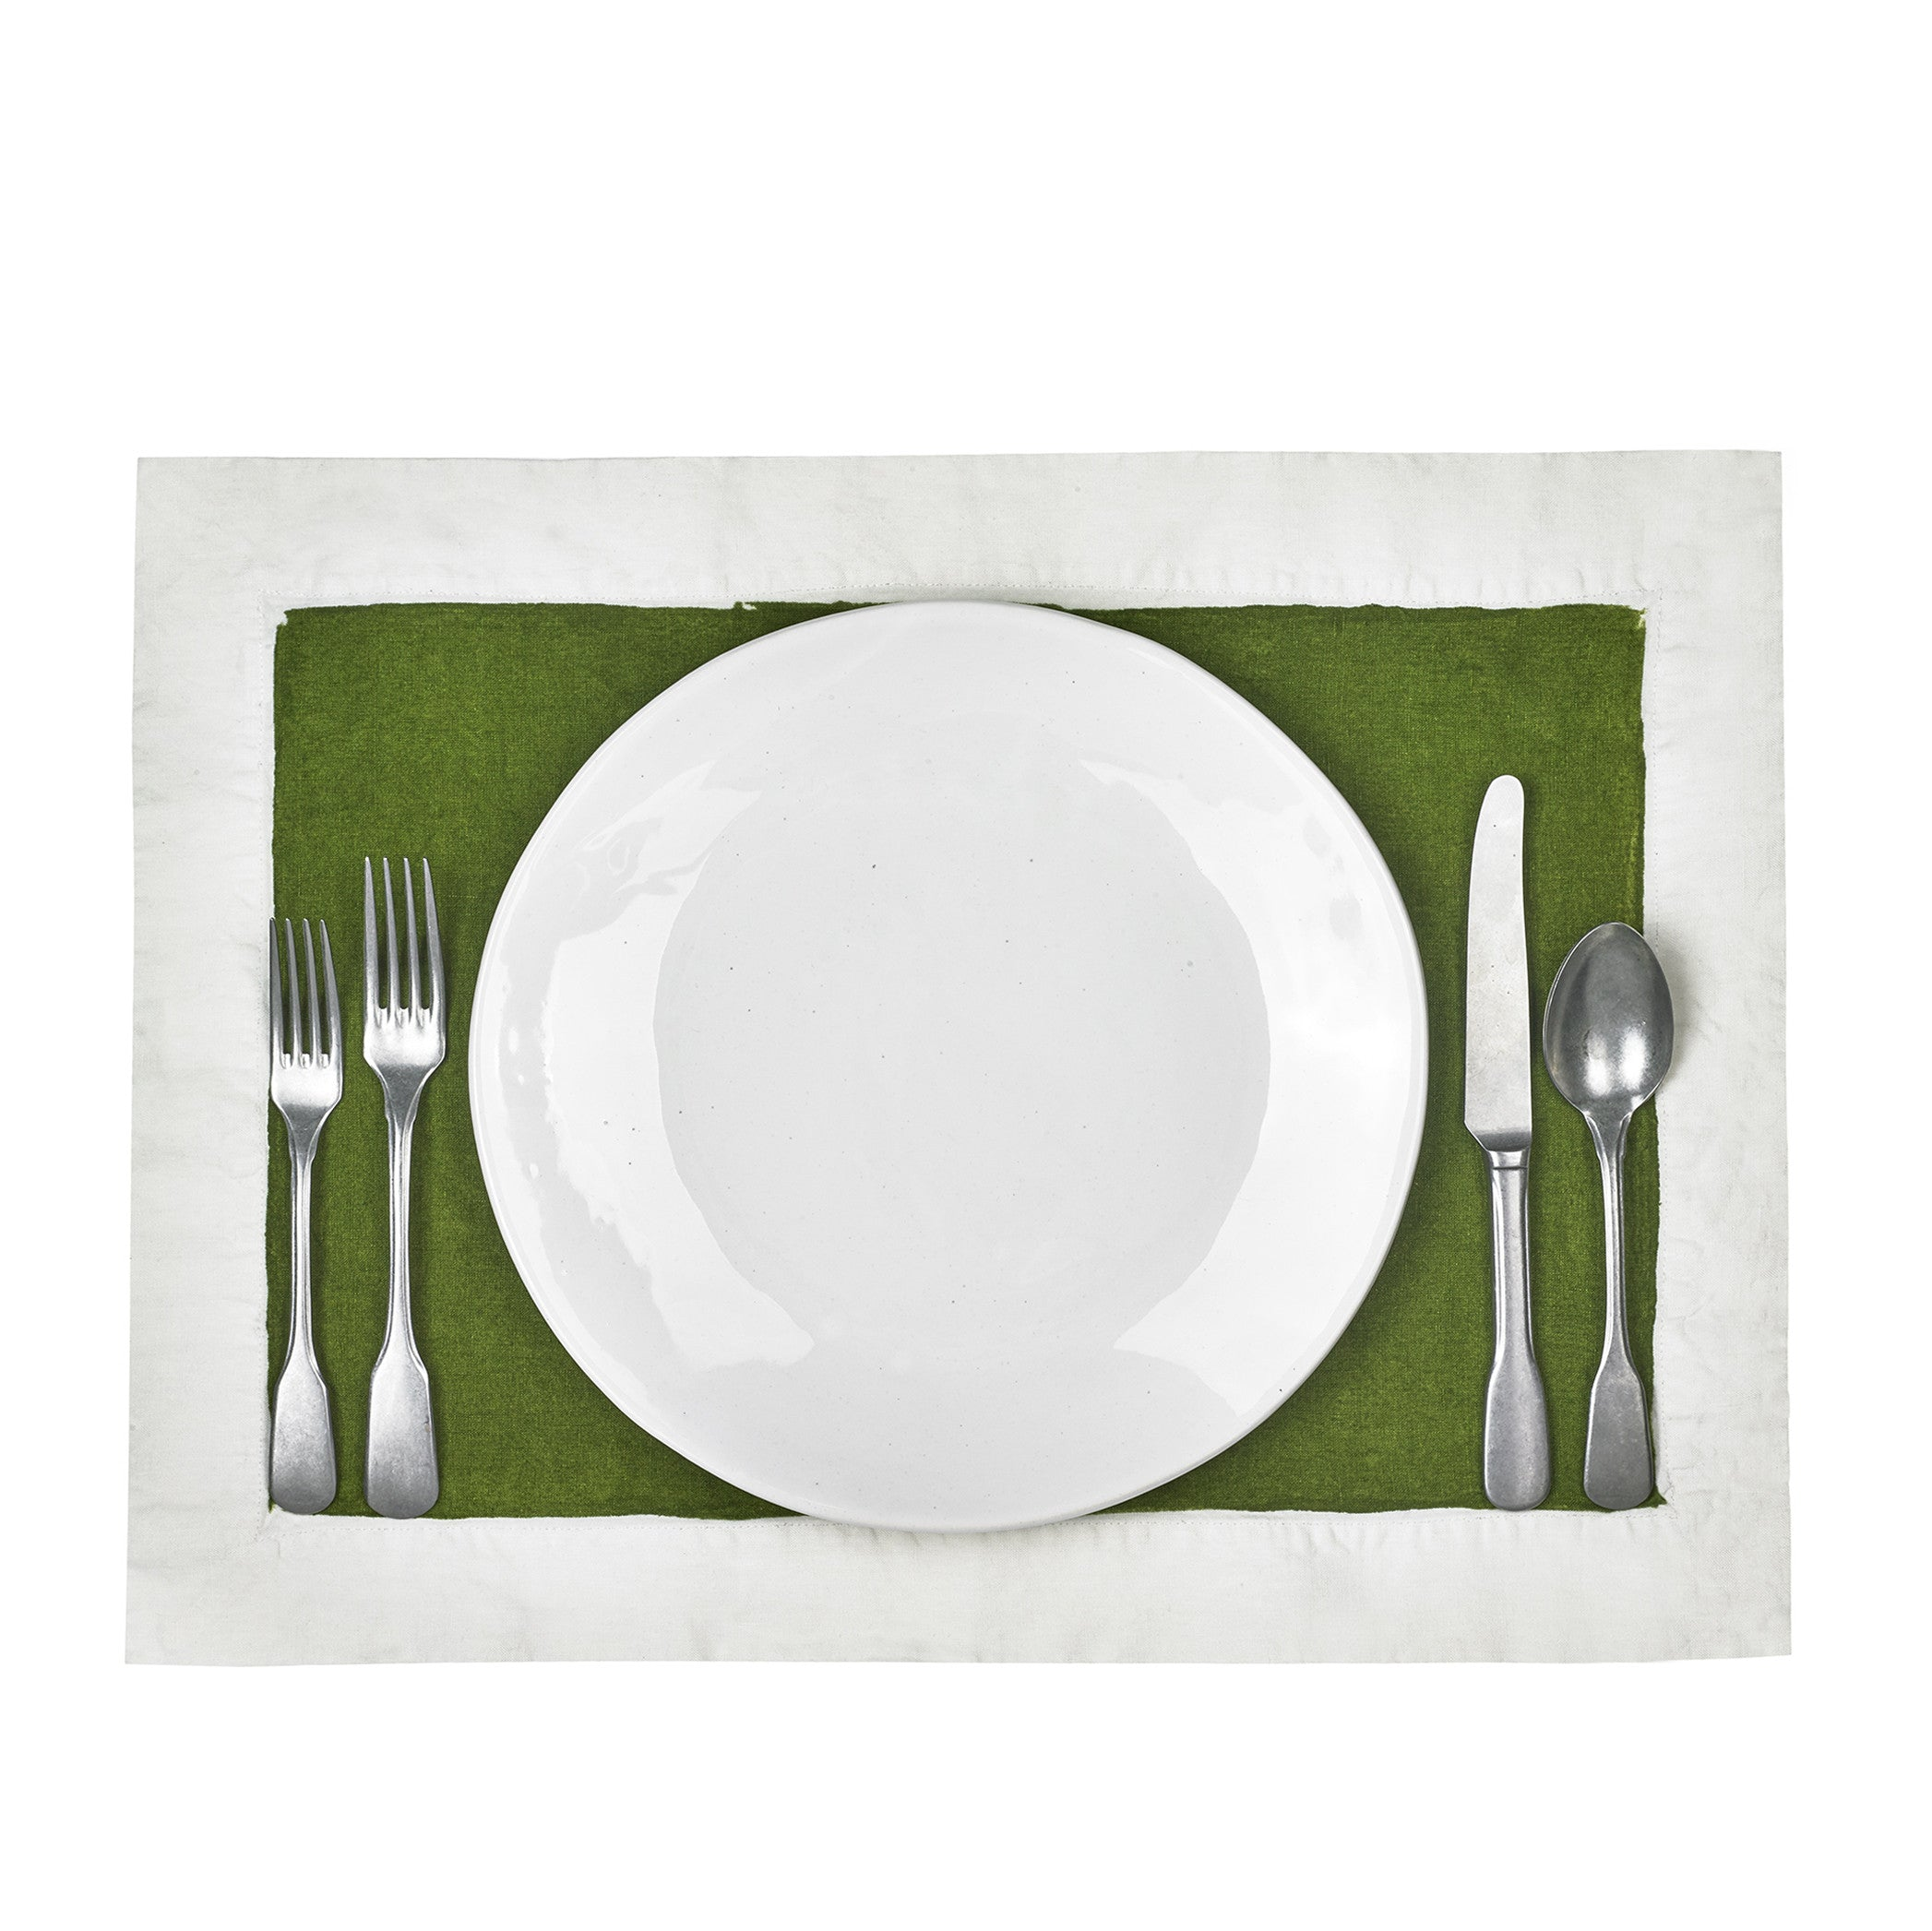 Full Field Linen Placemat in Avocado Green